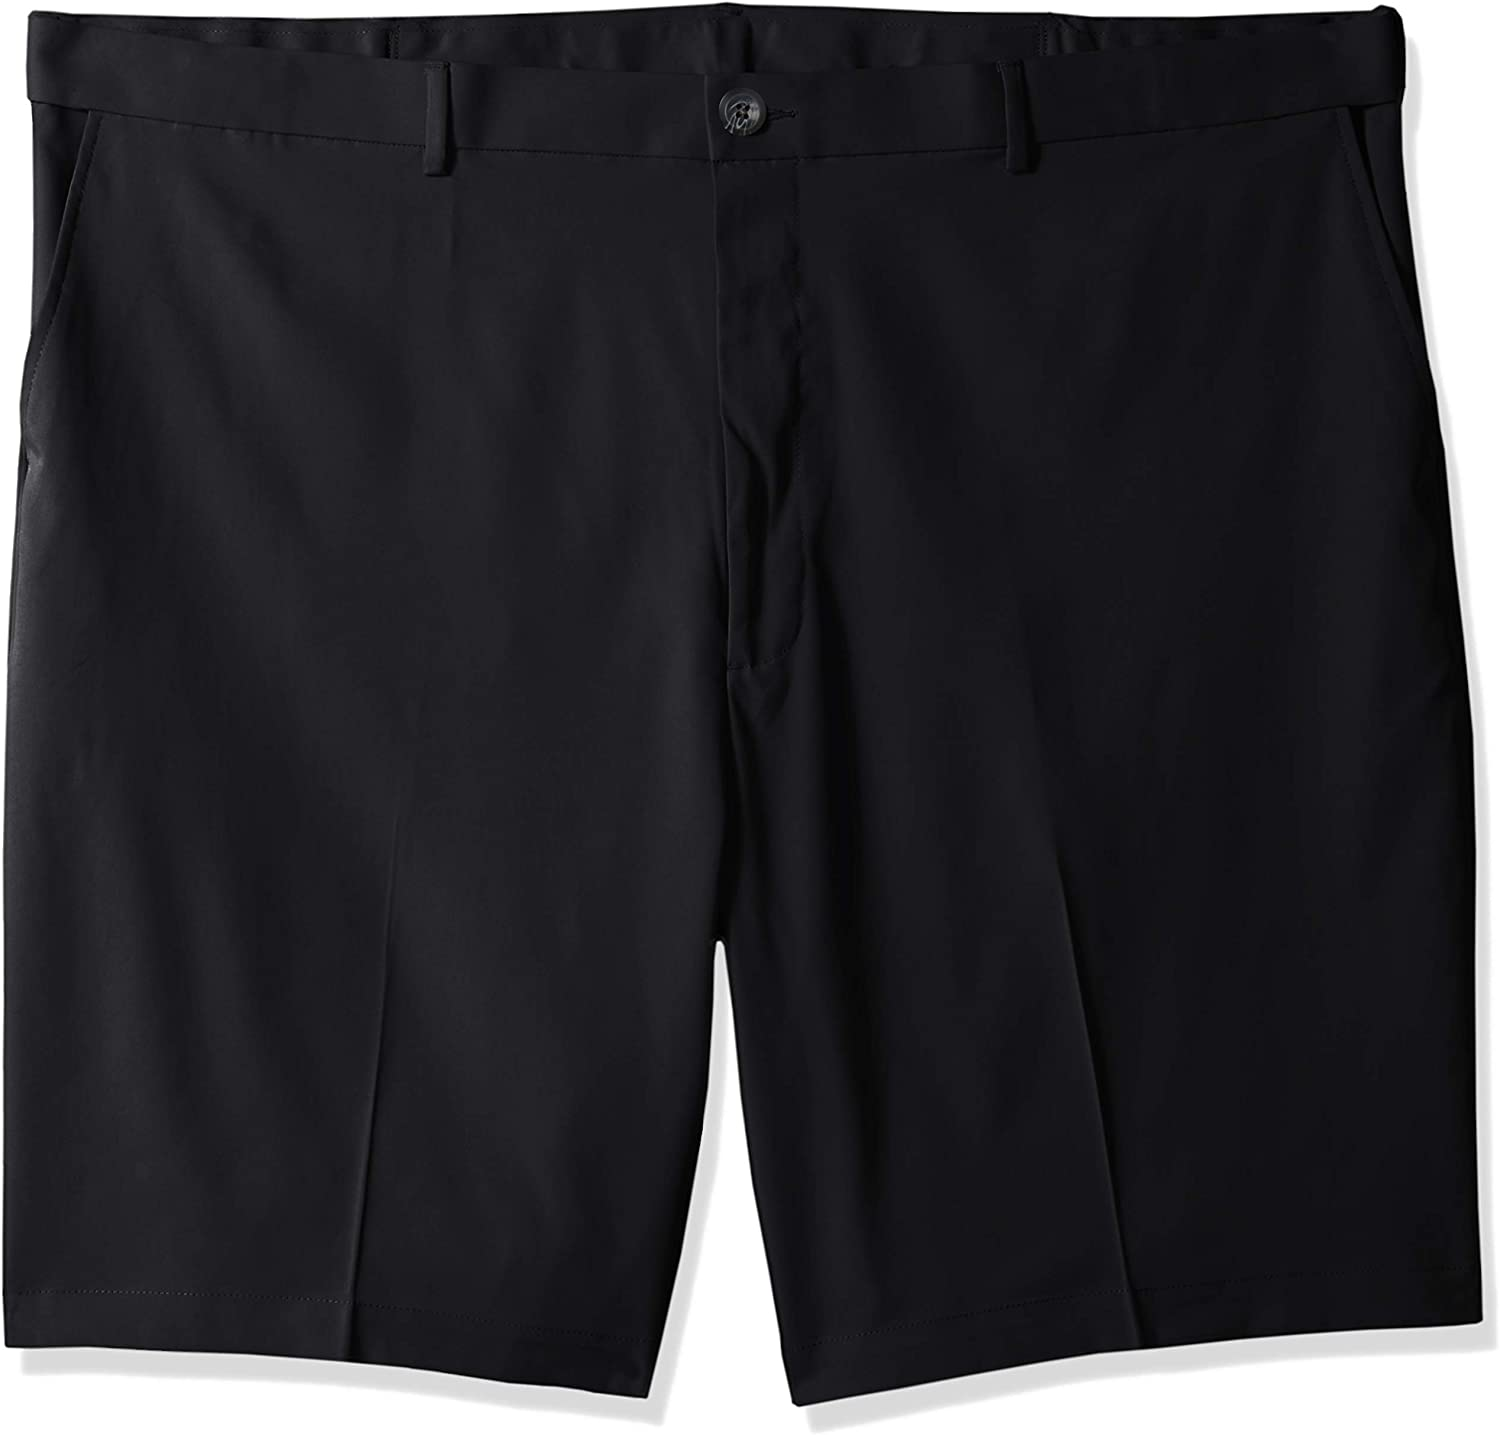 Savane Men's Flat Front Flex-on Solid Short